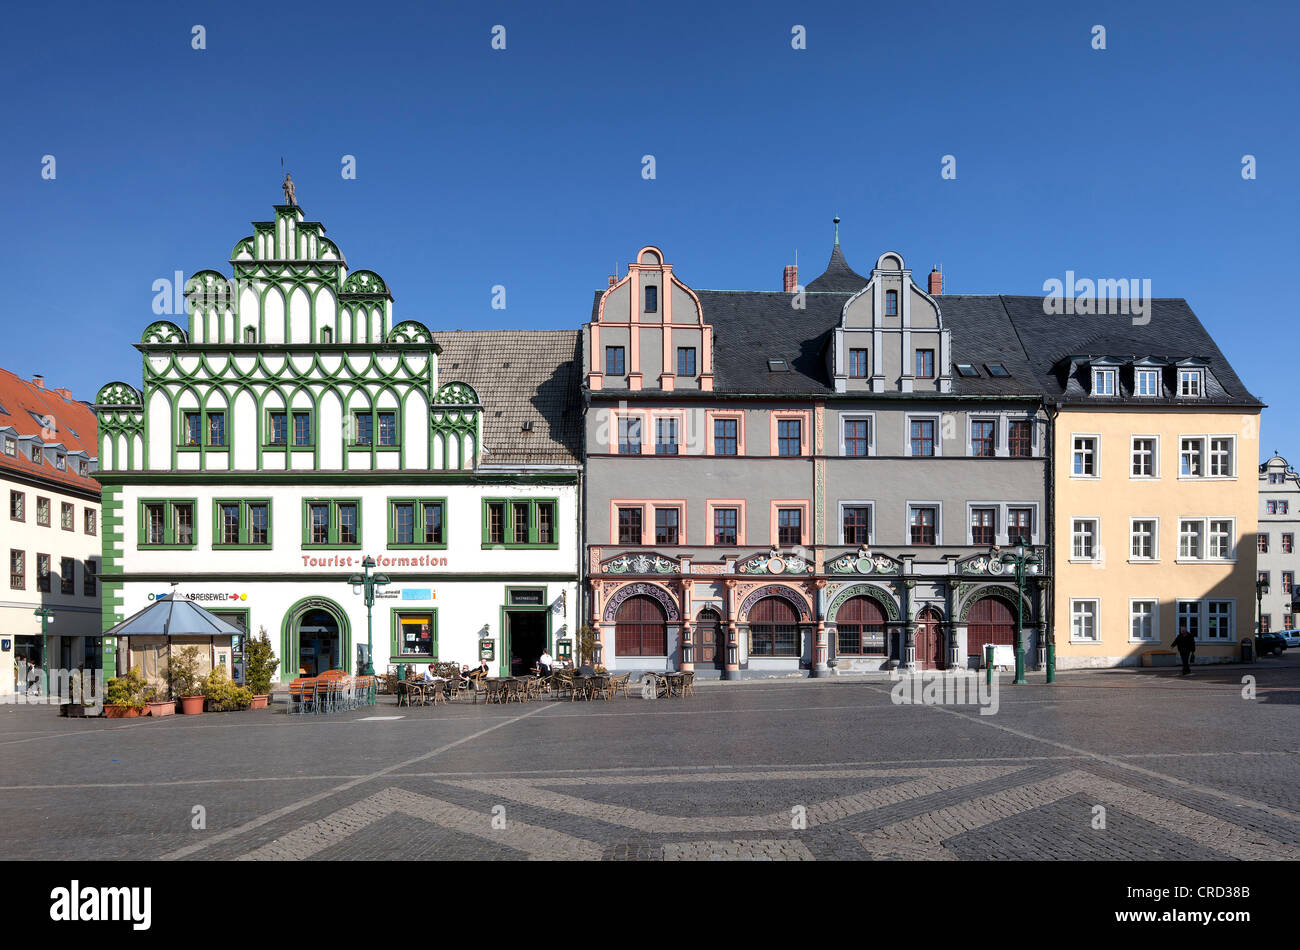 Townhouse and Cranach House on market square, Weimar, Thuringia, Germany, Europe, PublicGround - Stock Image